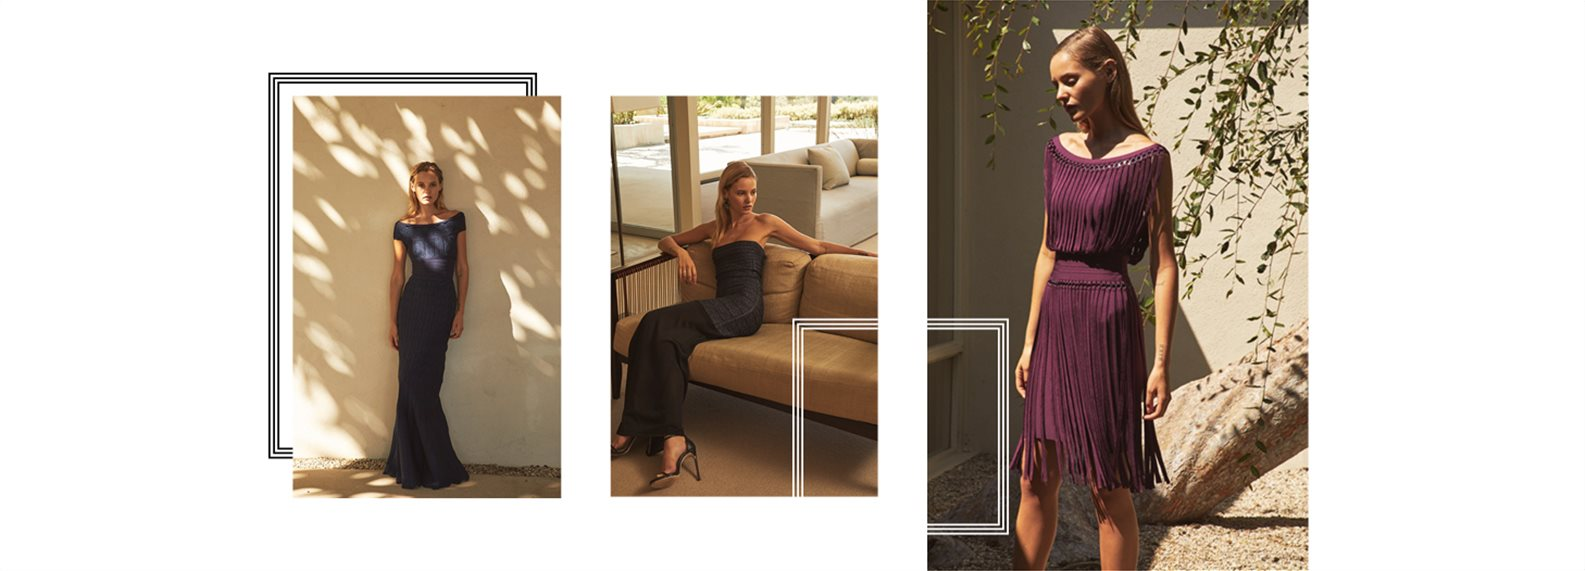 HERVE LEGER/ OFFERS UP TO 40% image